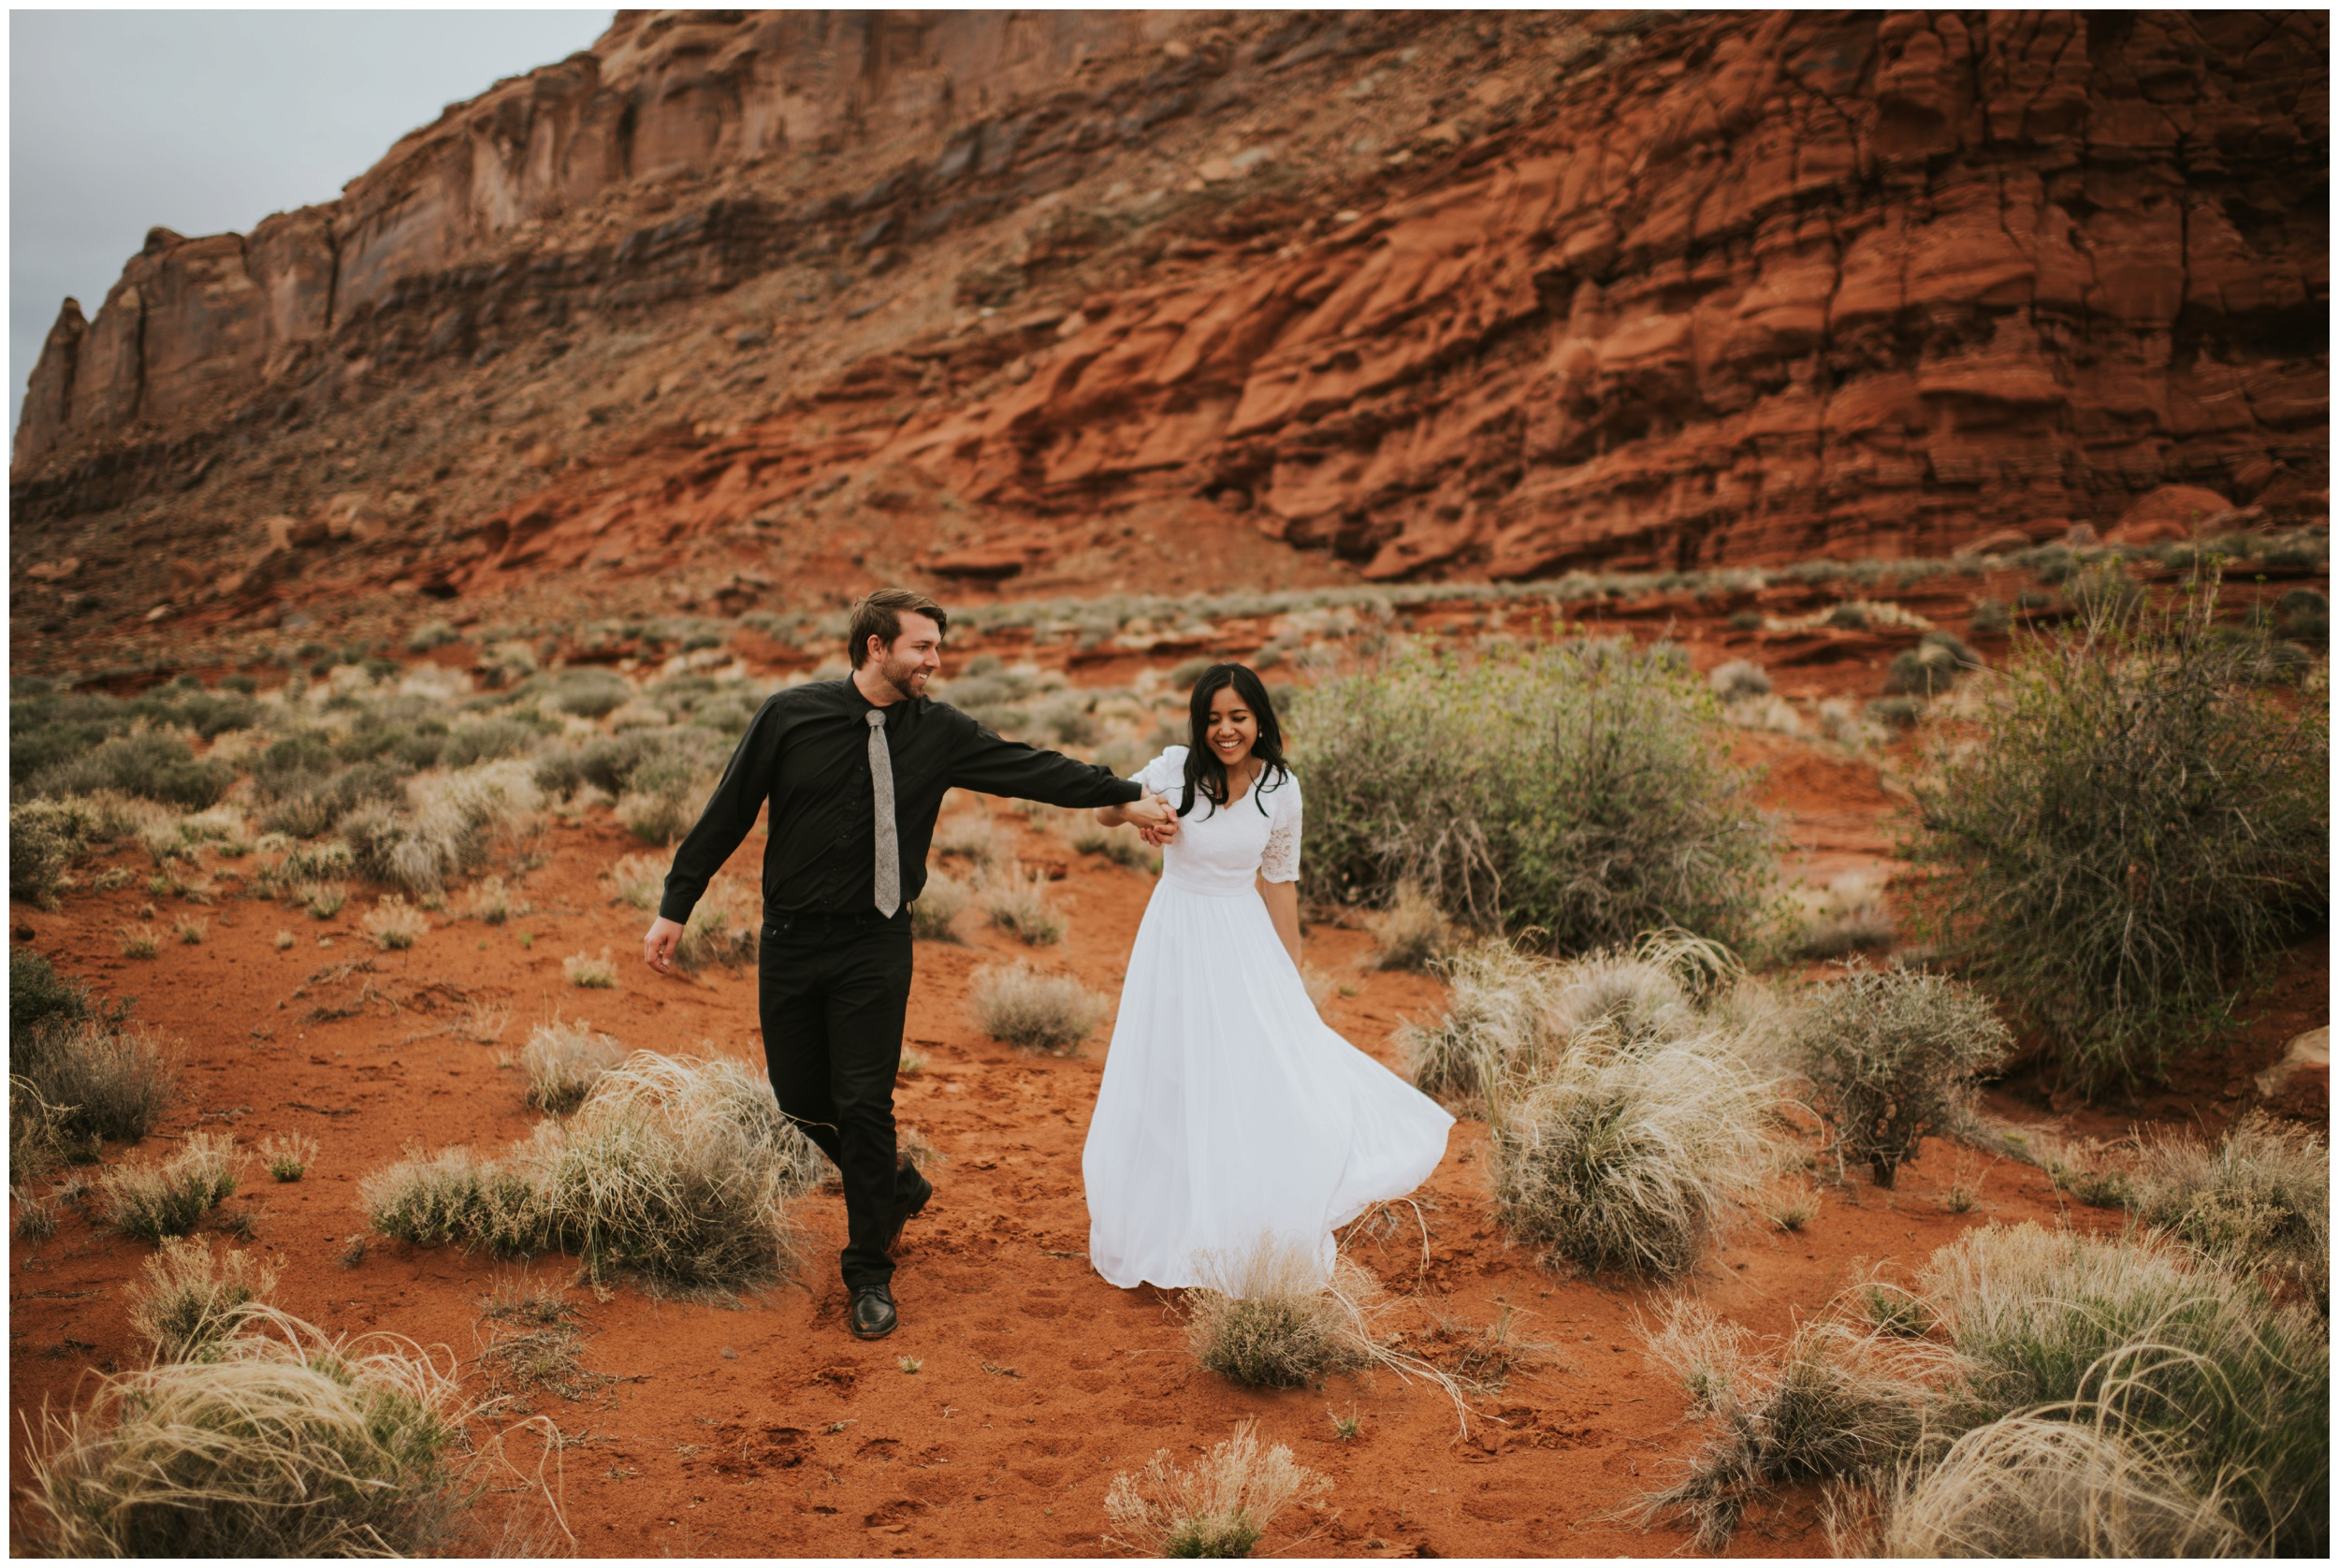 Bride and groom dancing and playing in a canyon  | Moab Utah, Photographer www.riversandroadsphotography.com